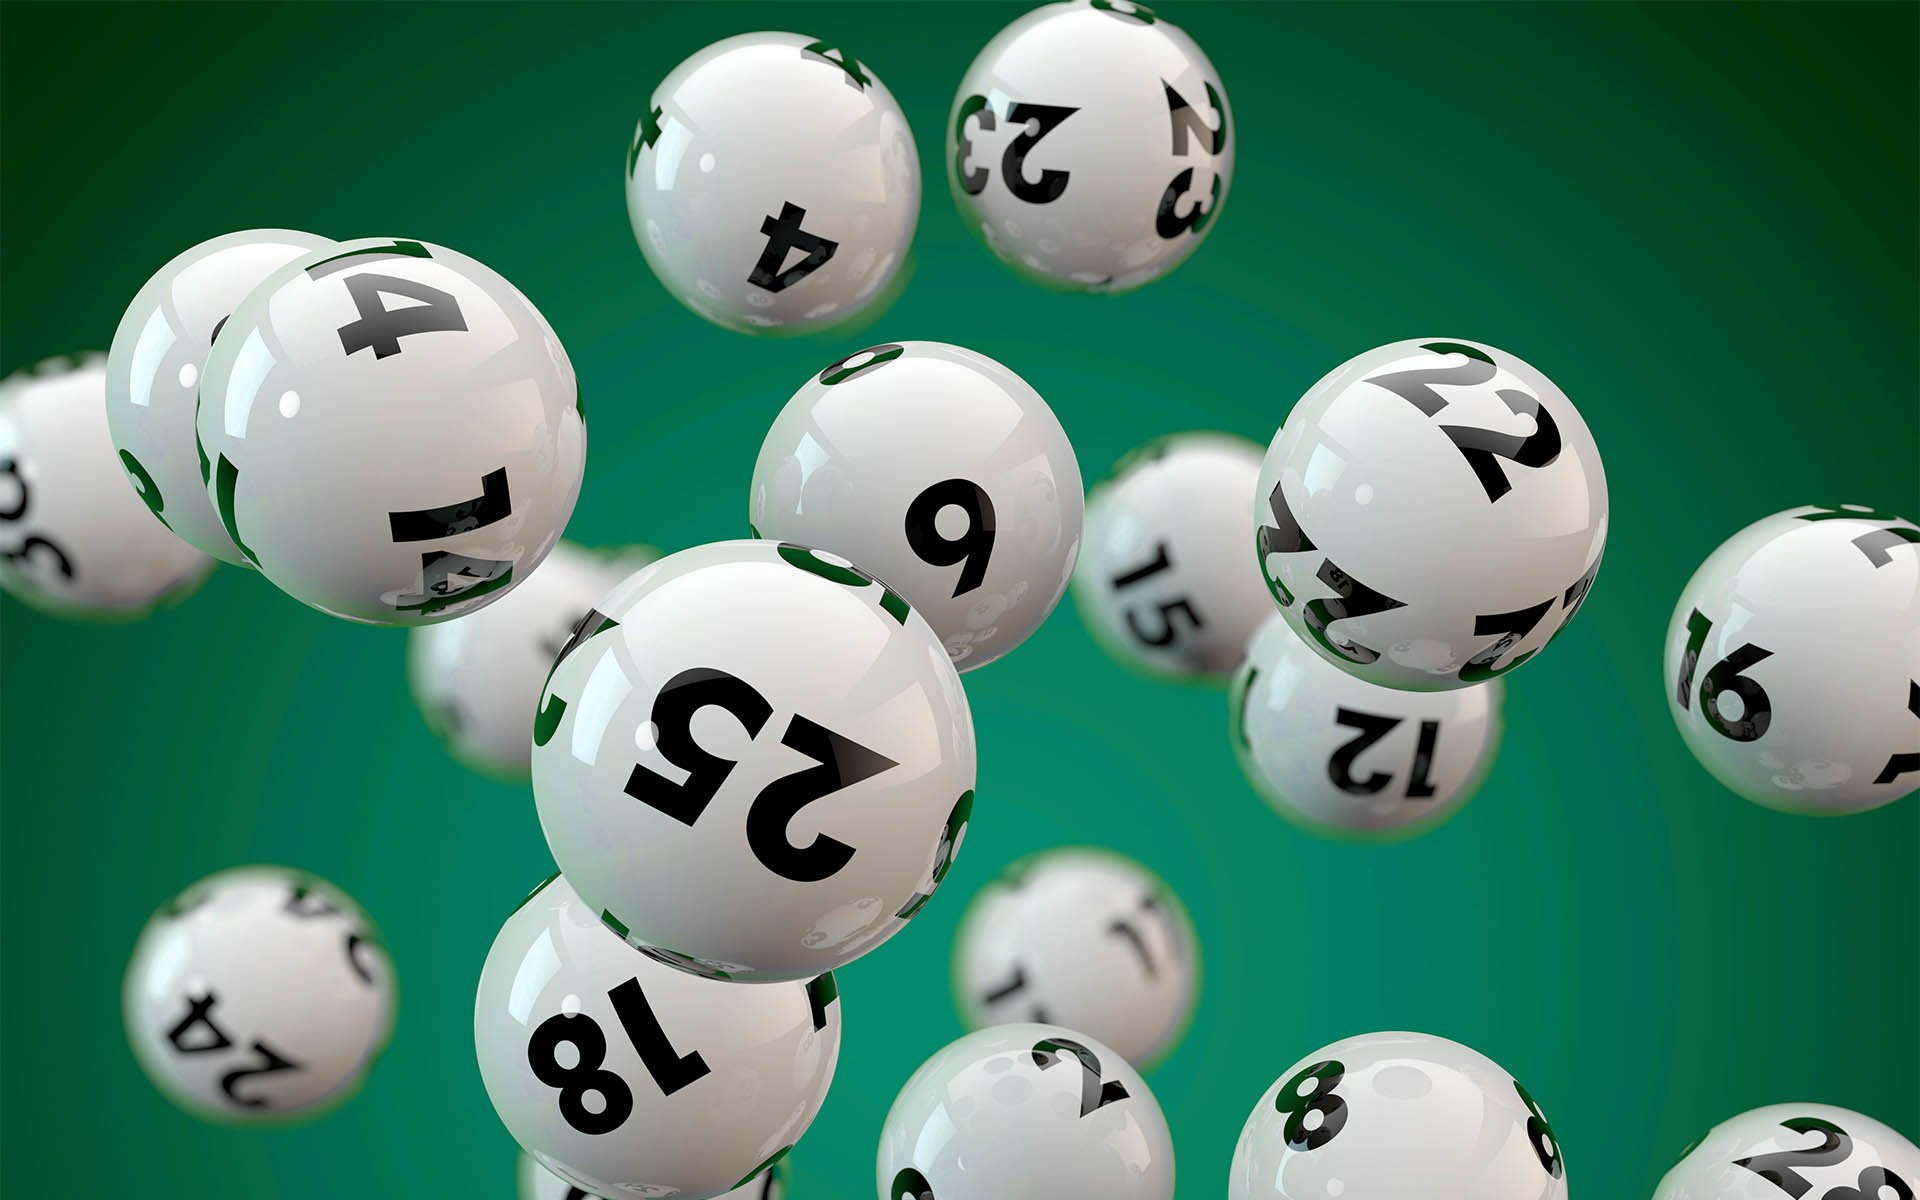 Play Lotto Online offering odds on all under sunlight